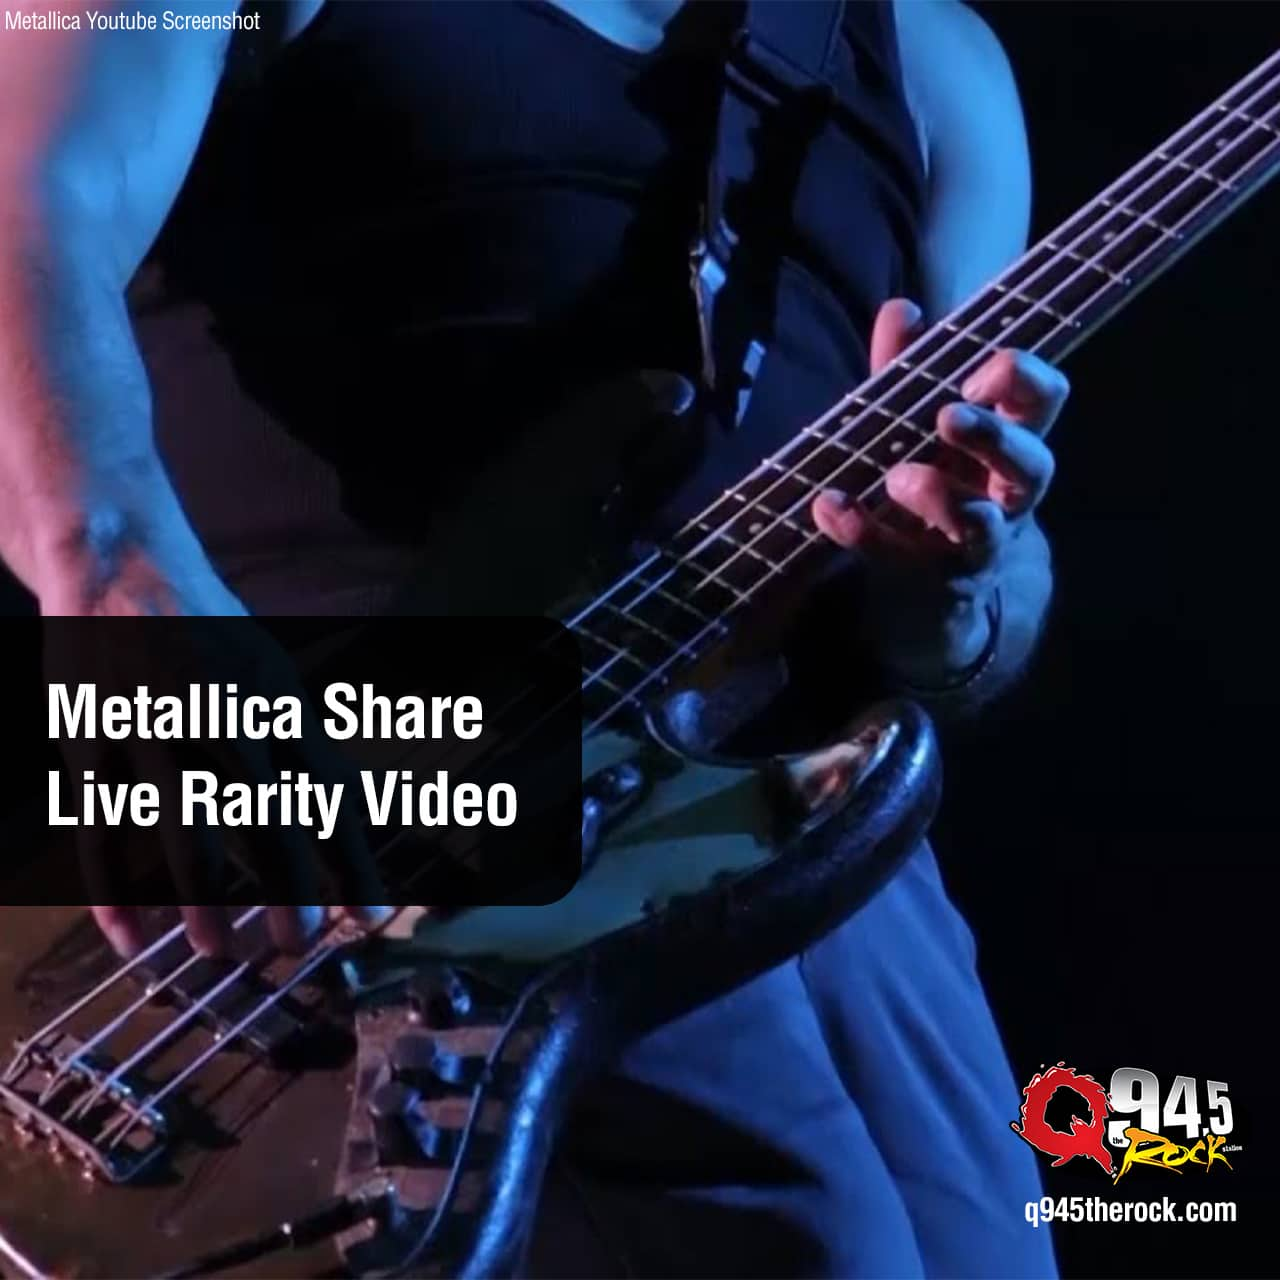 Metallica Share Live Rarity Video